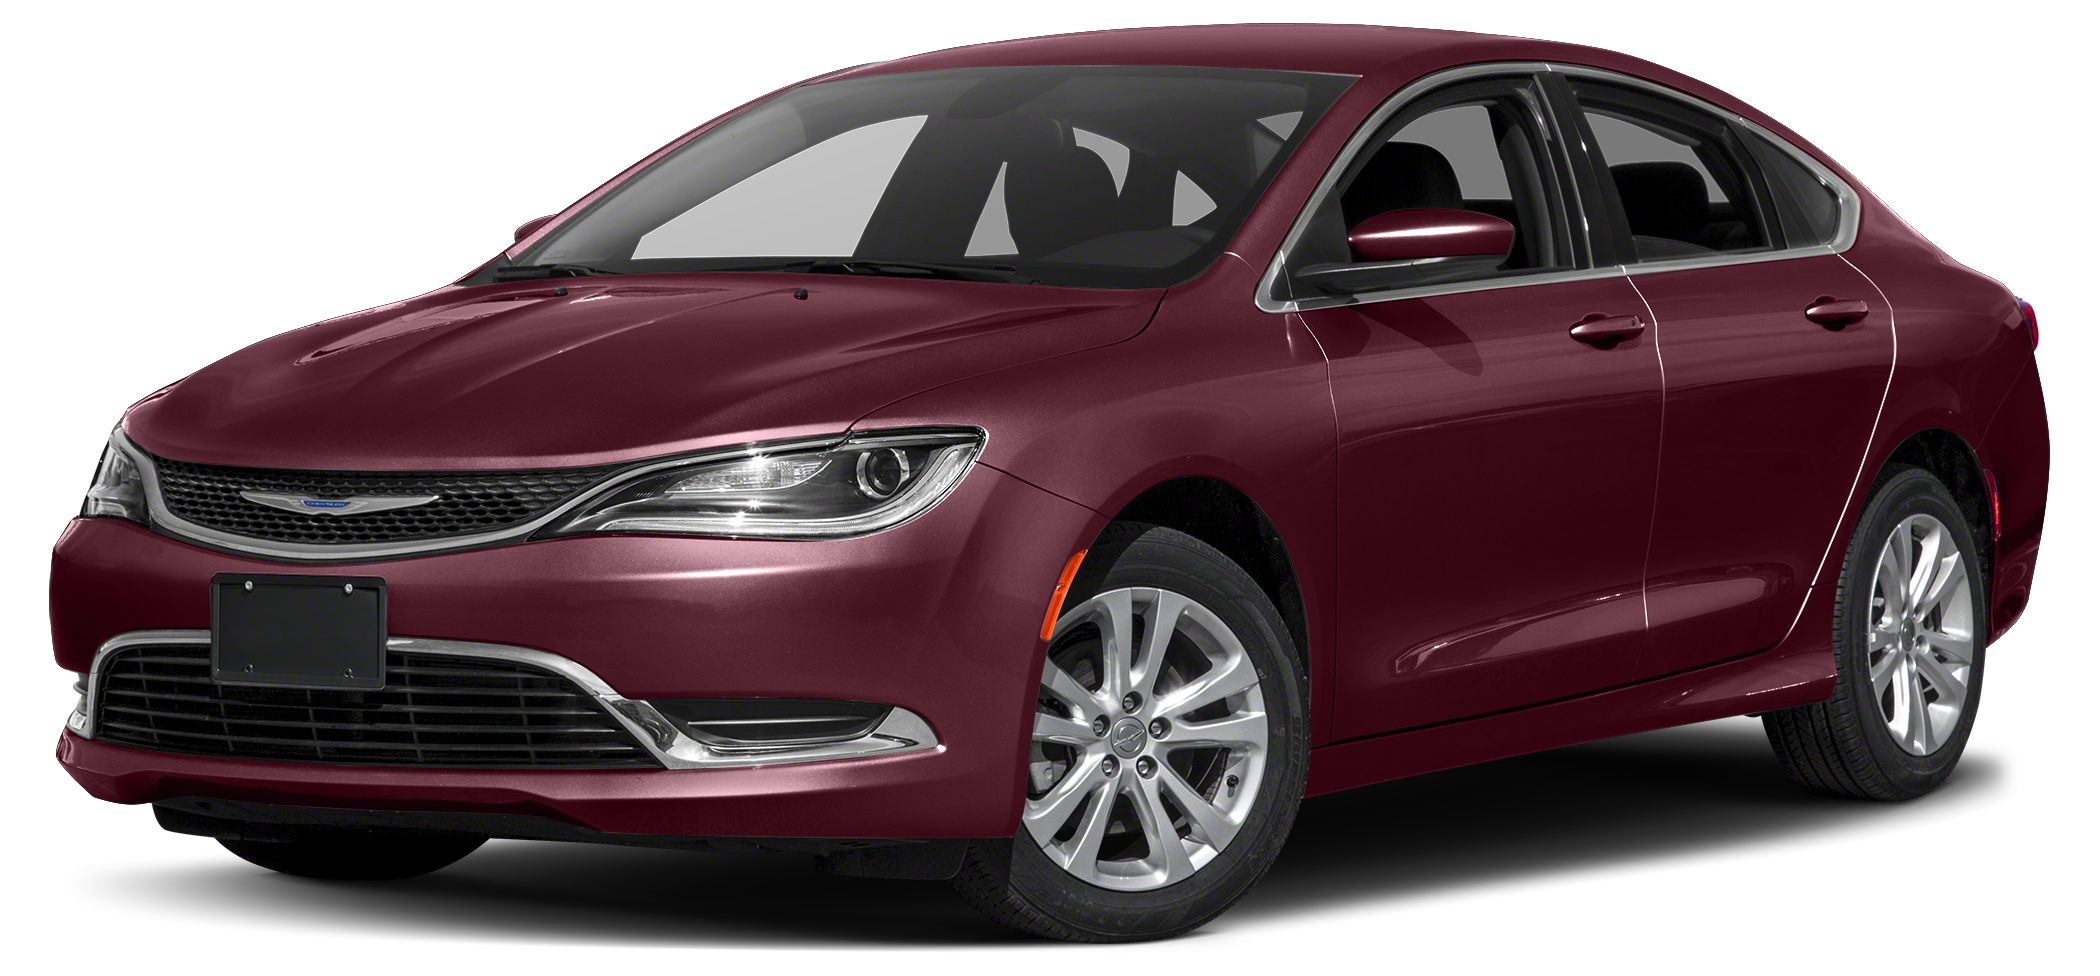 2017 Chrysler 200 Limited Miles 3446Color Velvet Red Pearlcoat Stock N5537 VIN 1C3CCCAG9HN50